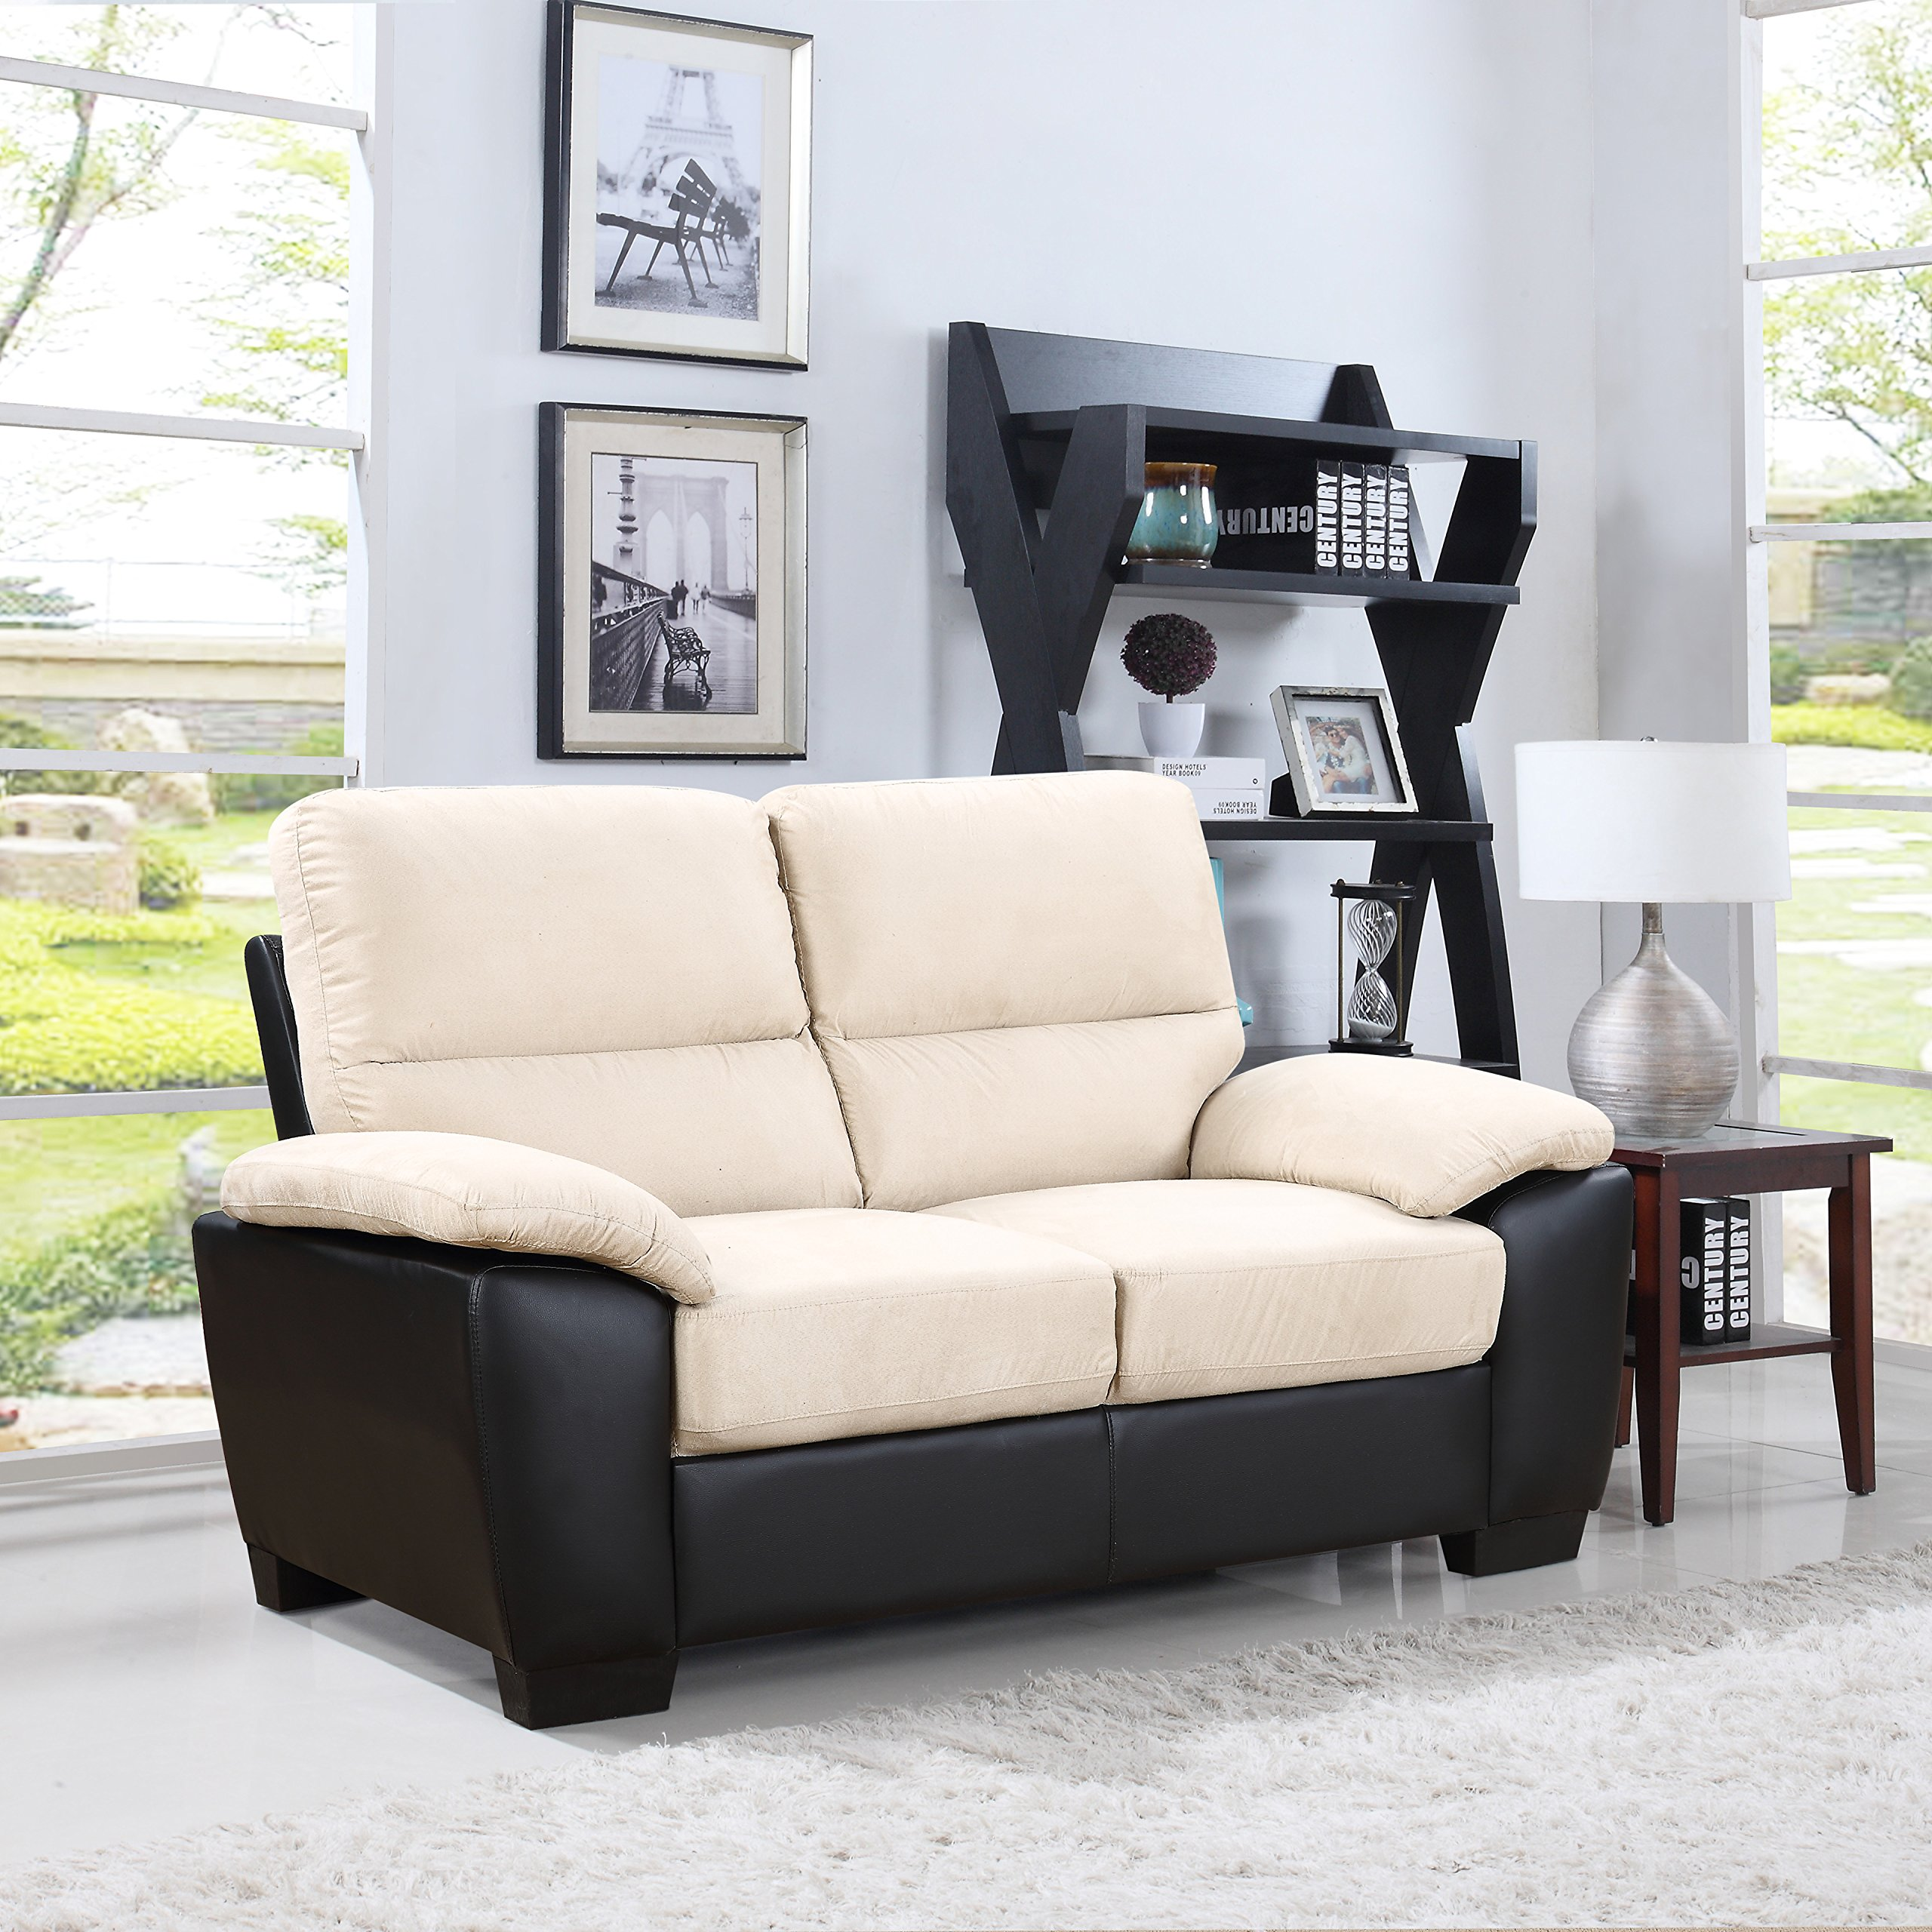 Divano Roma Classic Soft Microfiber and Bonded Leather Living Room Furniture